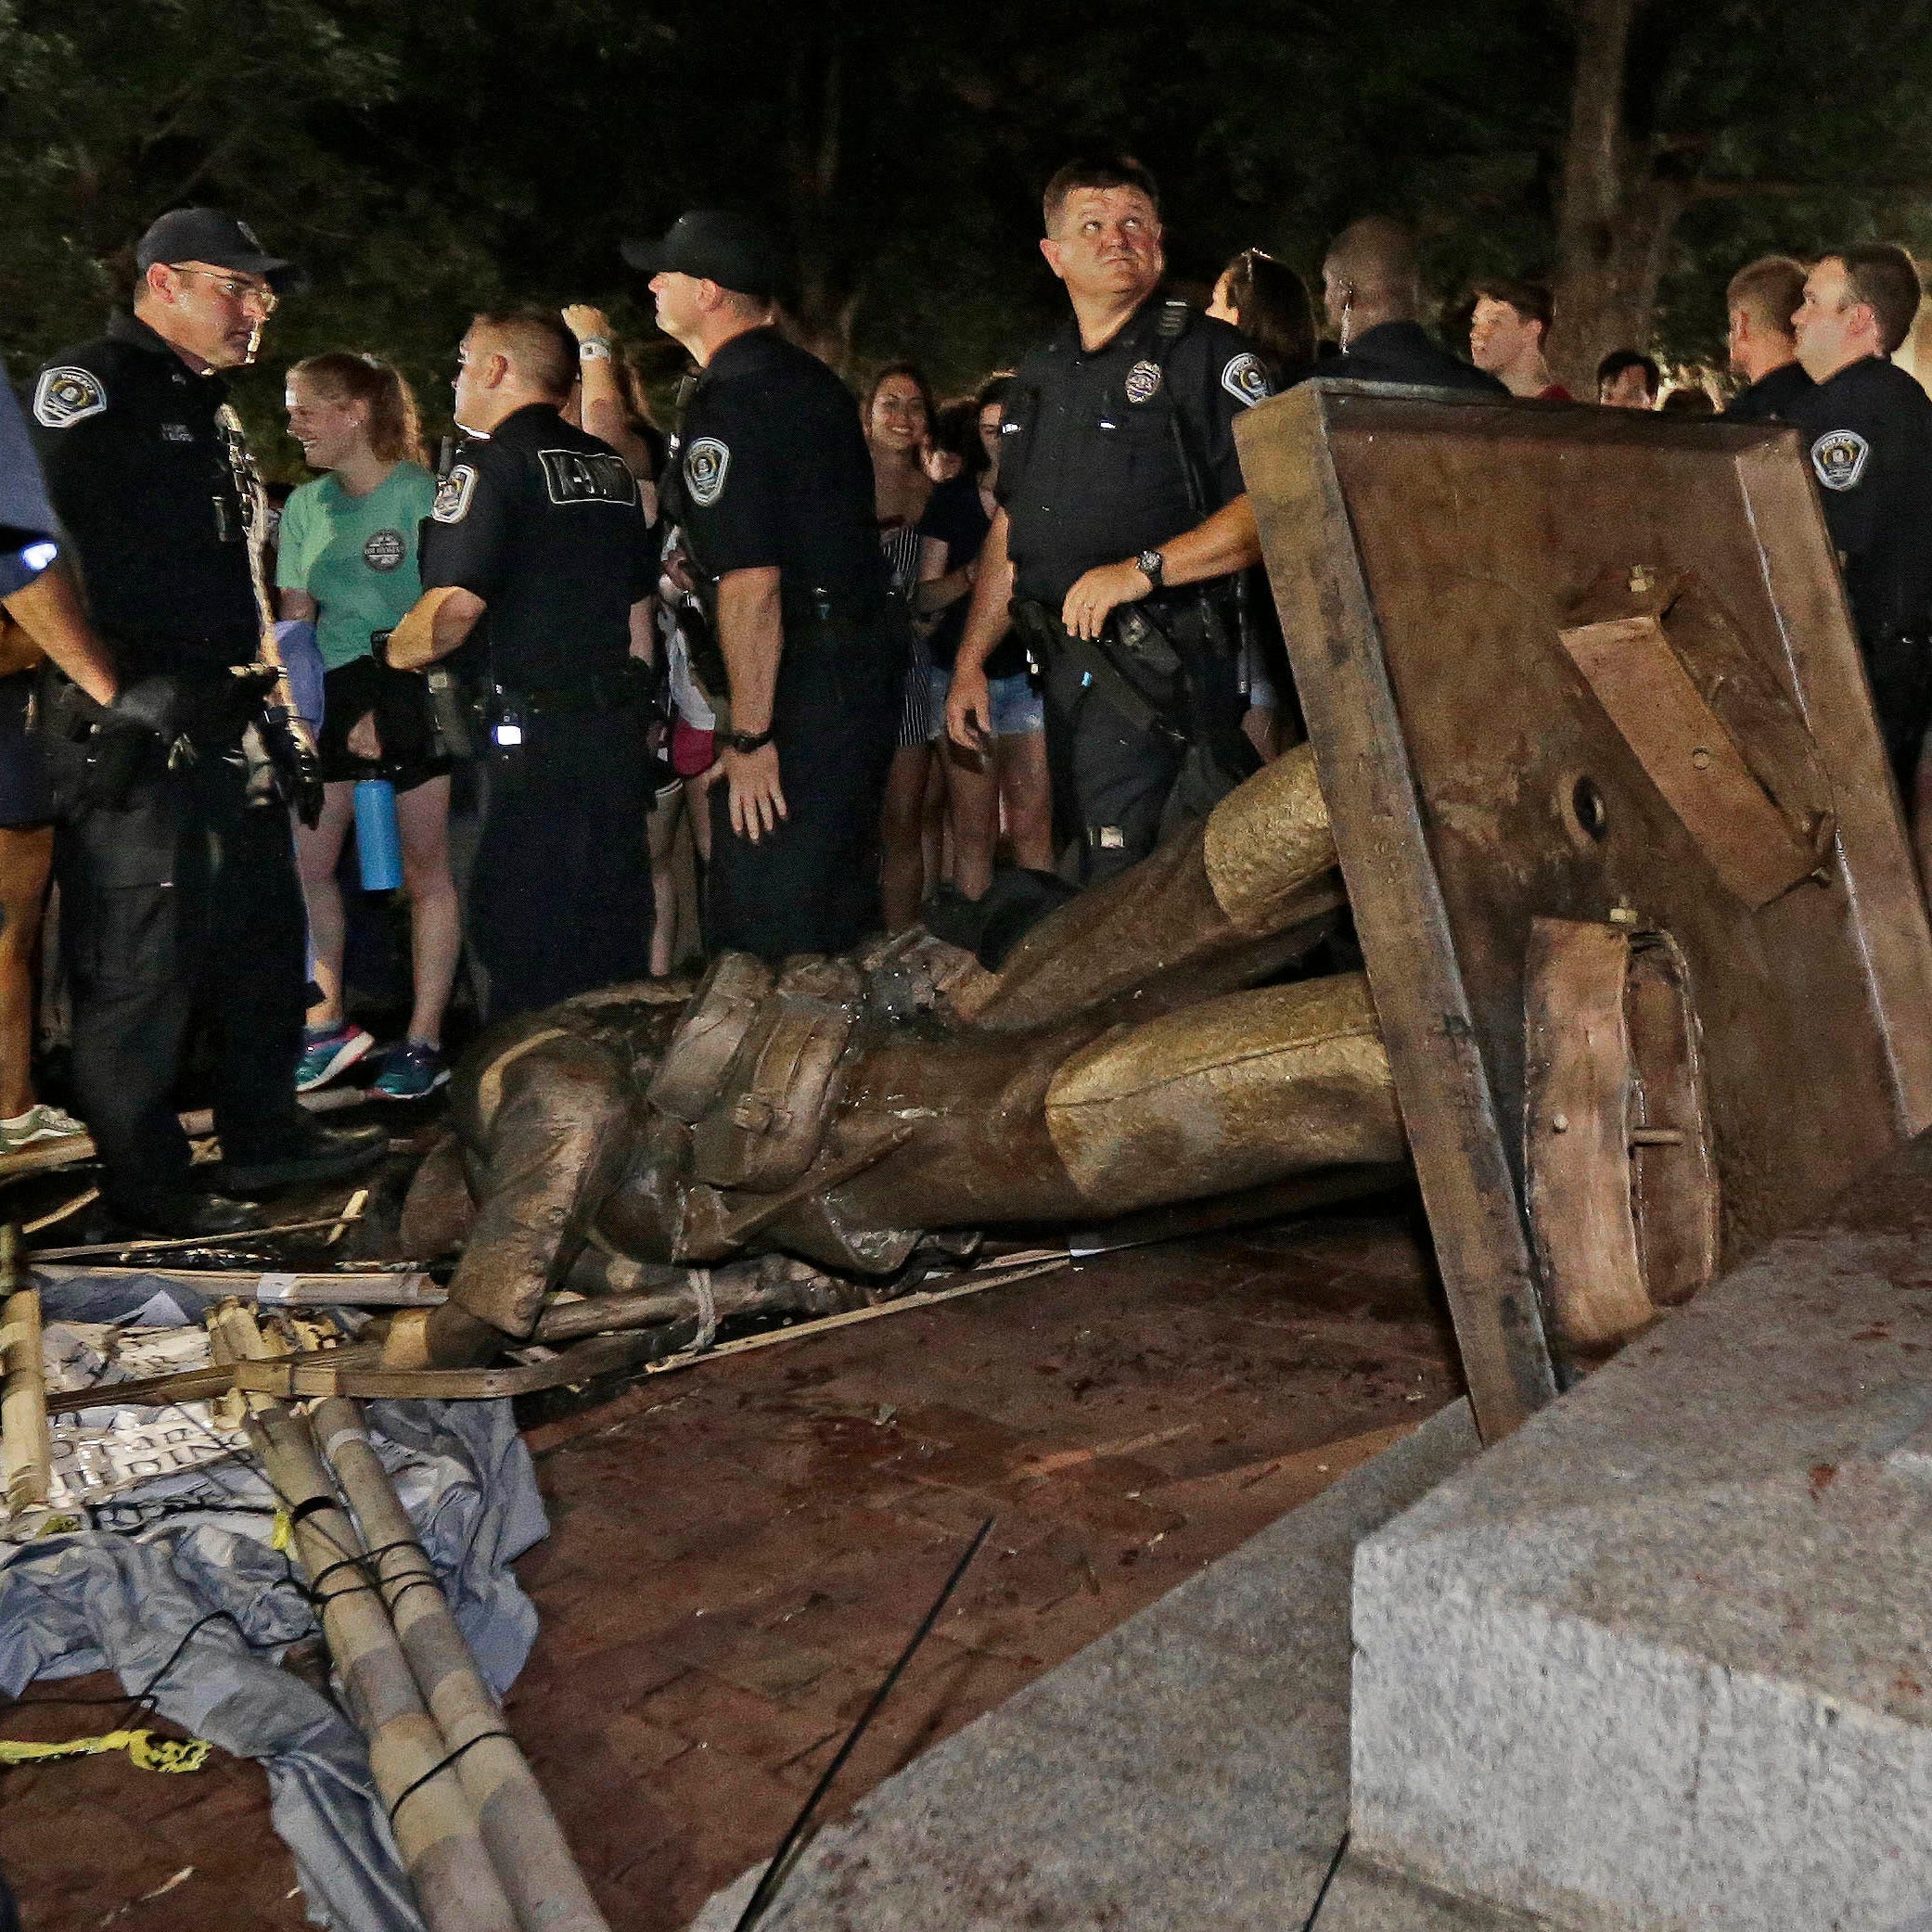 Confederate statue, known as 'Silent Sam,' toppled by protesters on UNC campus